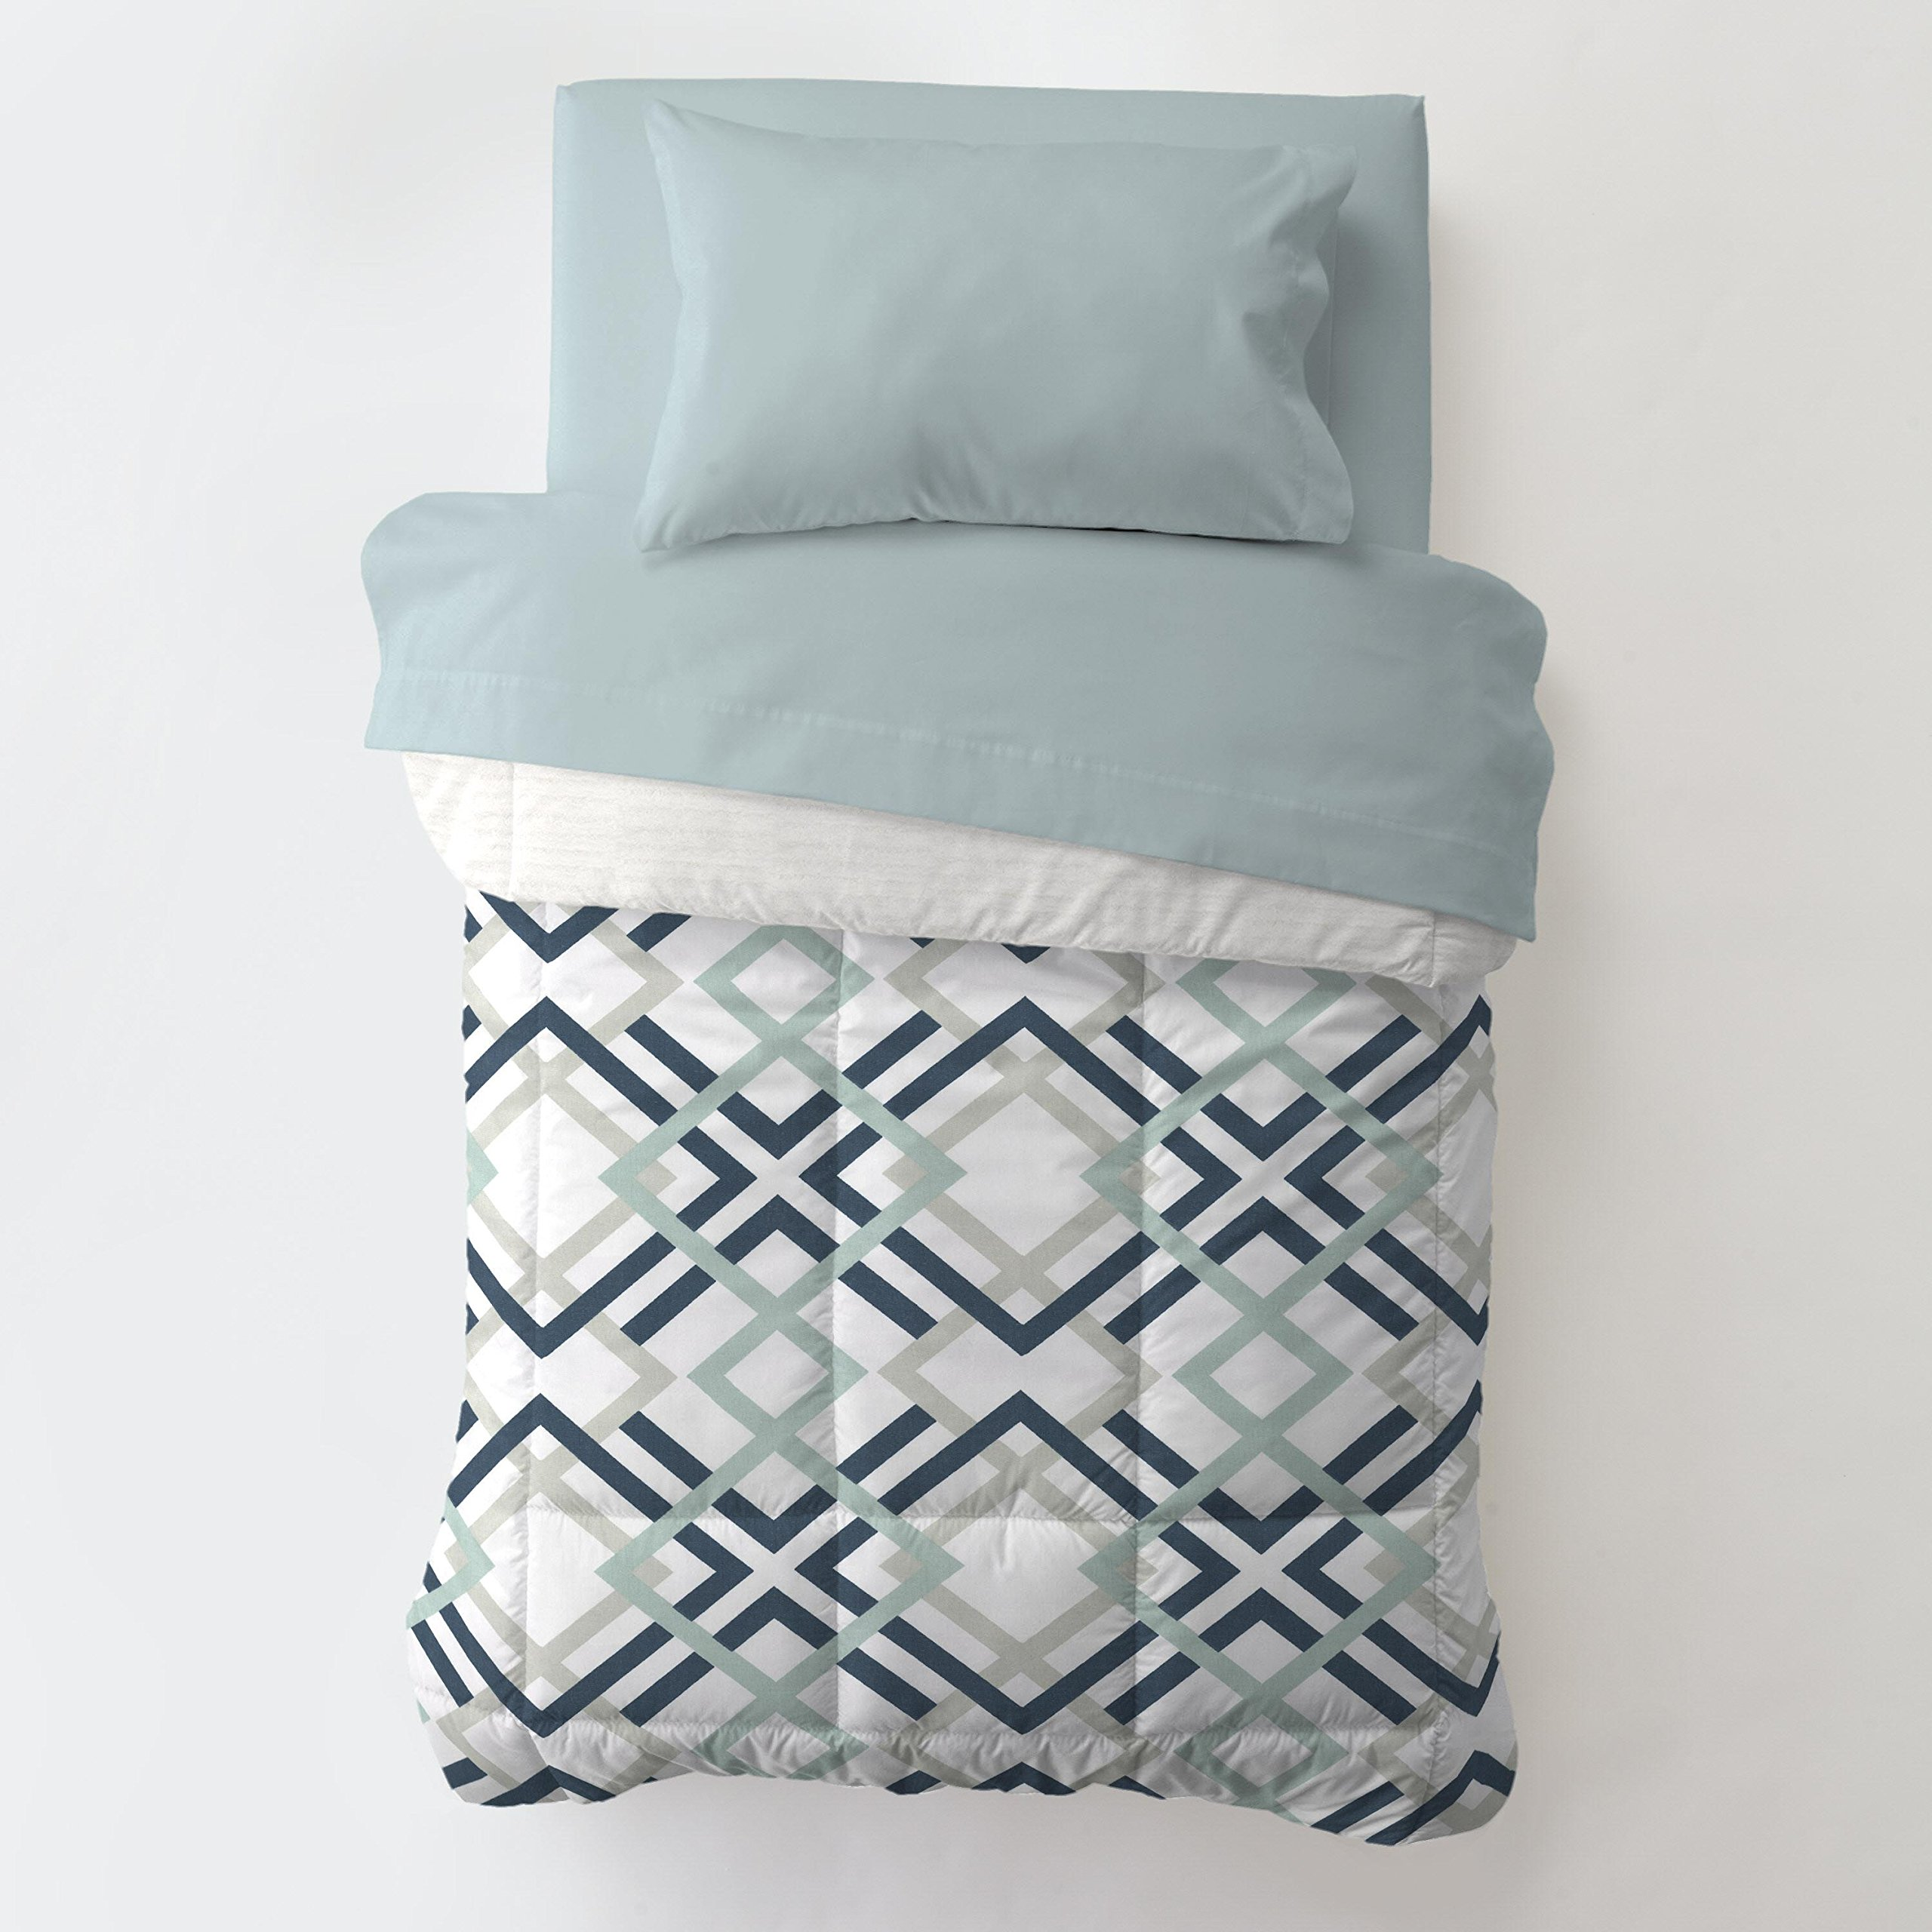 Carousel Designs Navy and Gray Geometric Toddler Bed Comforter